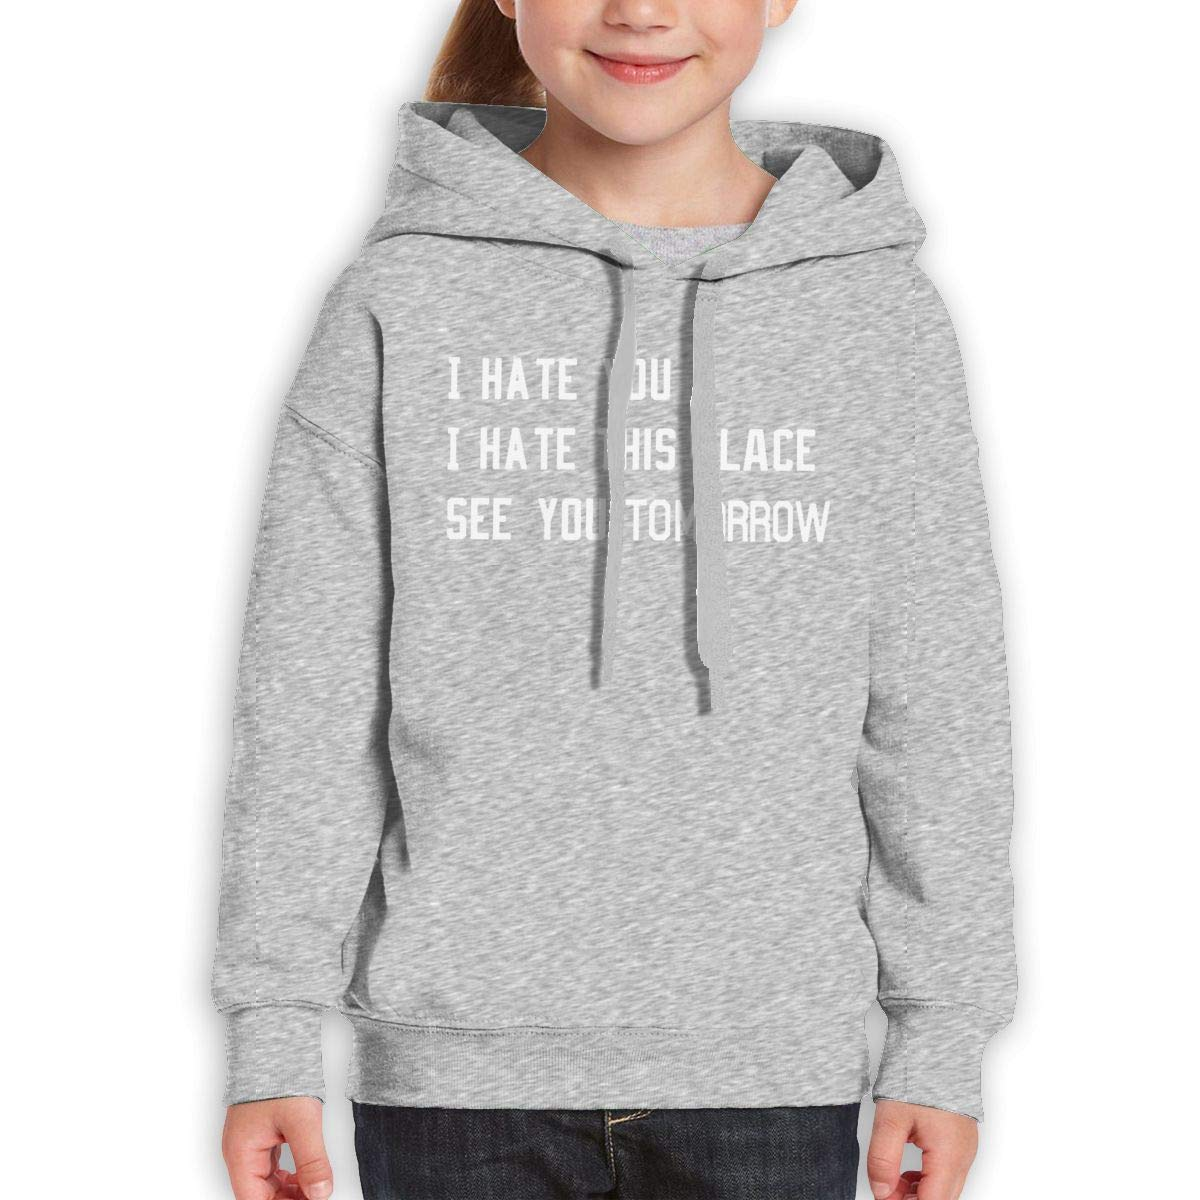 Boys Girls I Hate You I Hate This Place See You Tomorrow Teen Youth Hoody Black